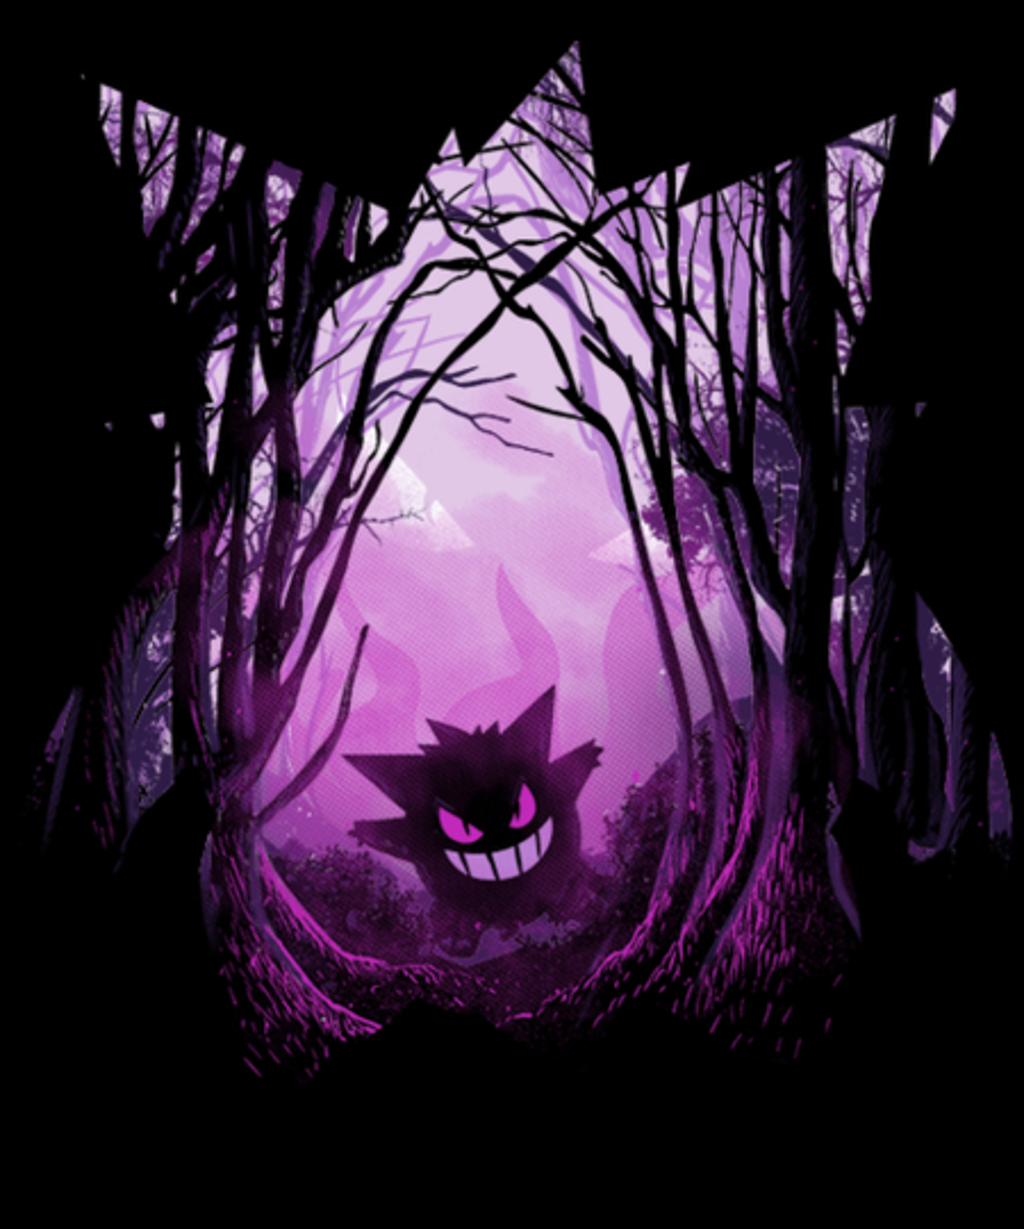 Qwertee: The poisoned forest